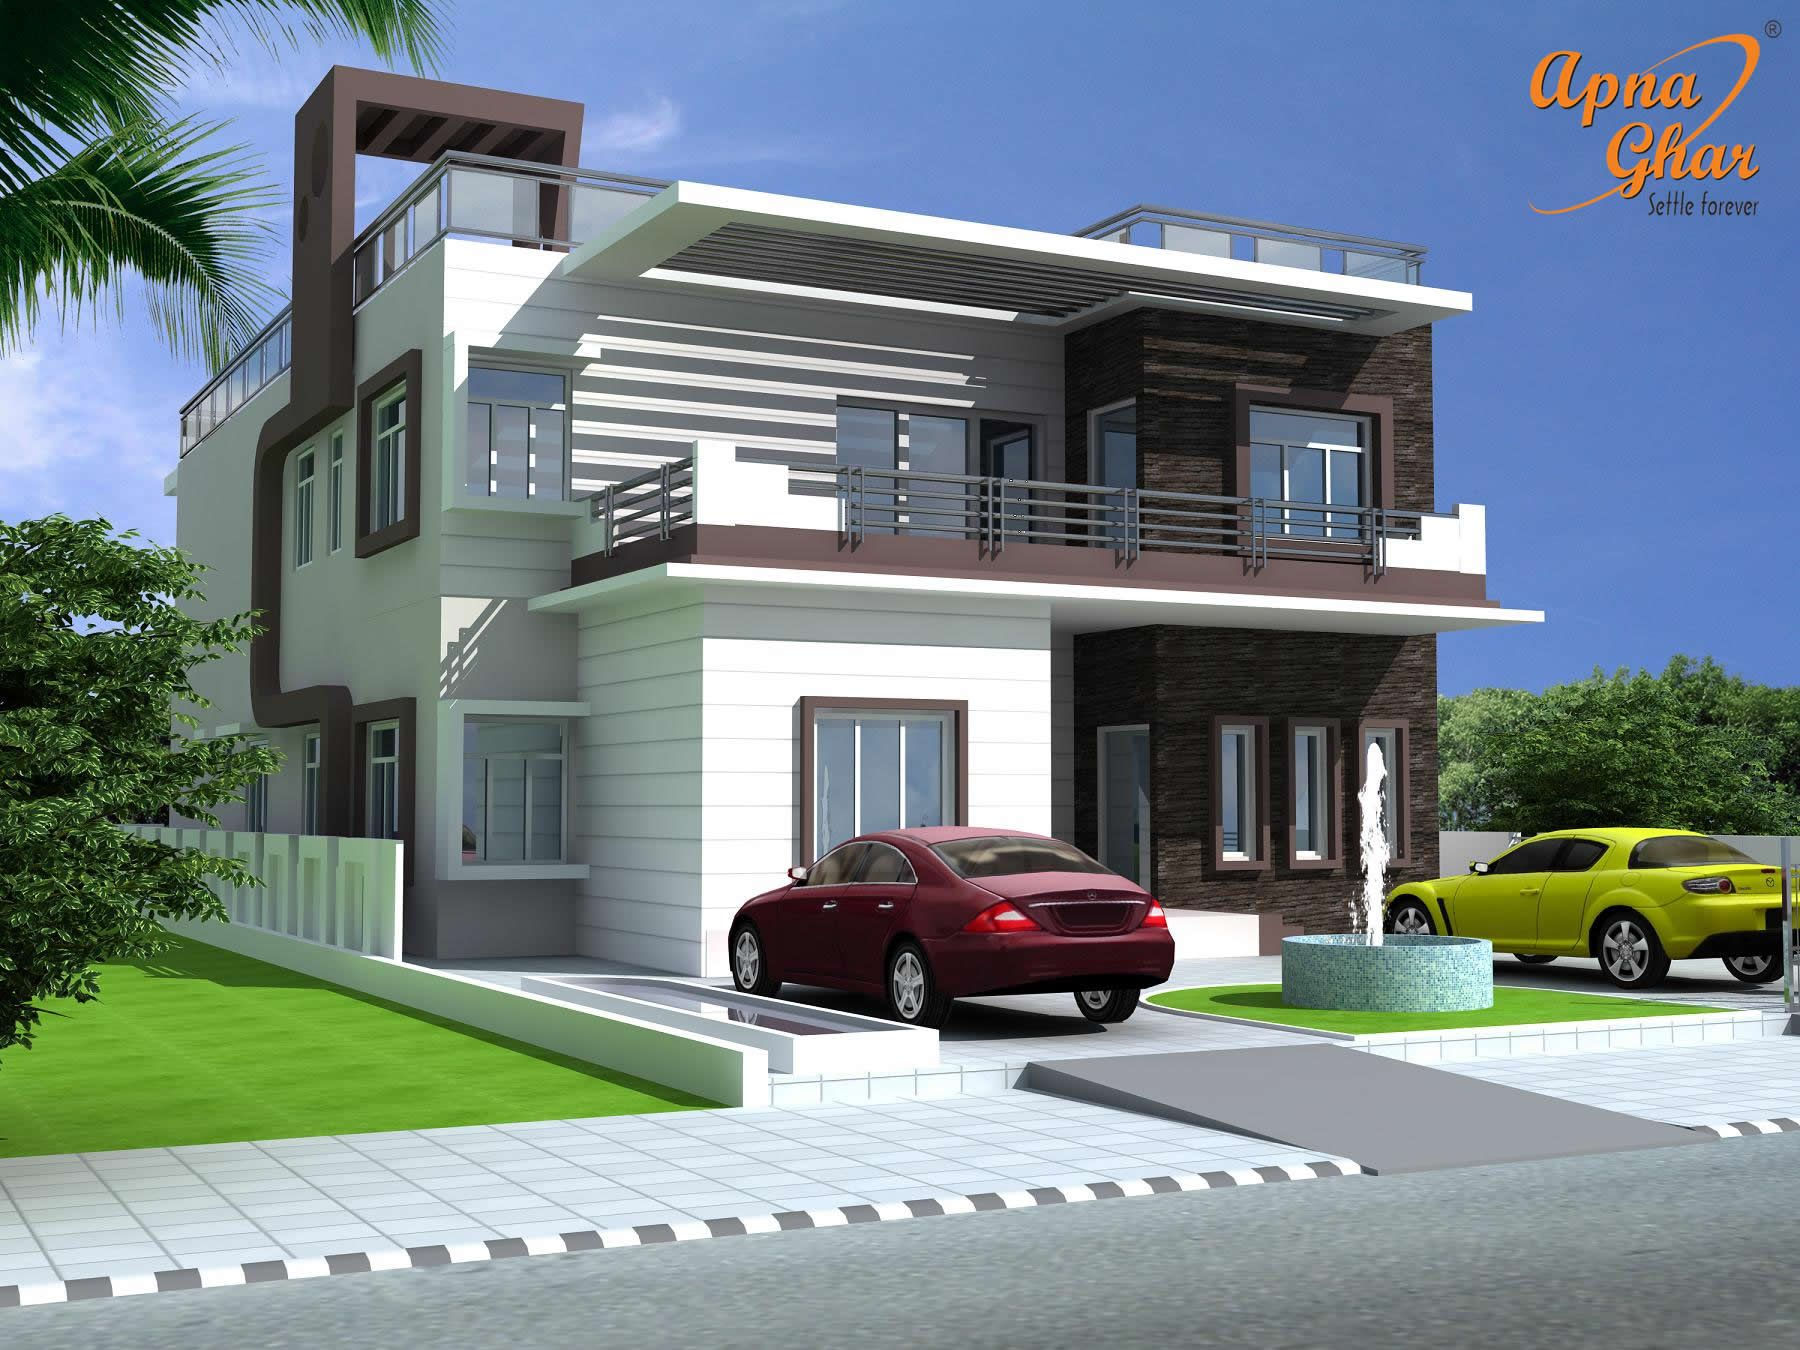 6 bedrooms duplex house design in 390m2 13m x 30m click for Duplex house designs interior